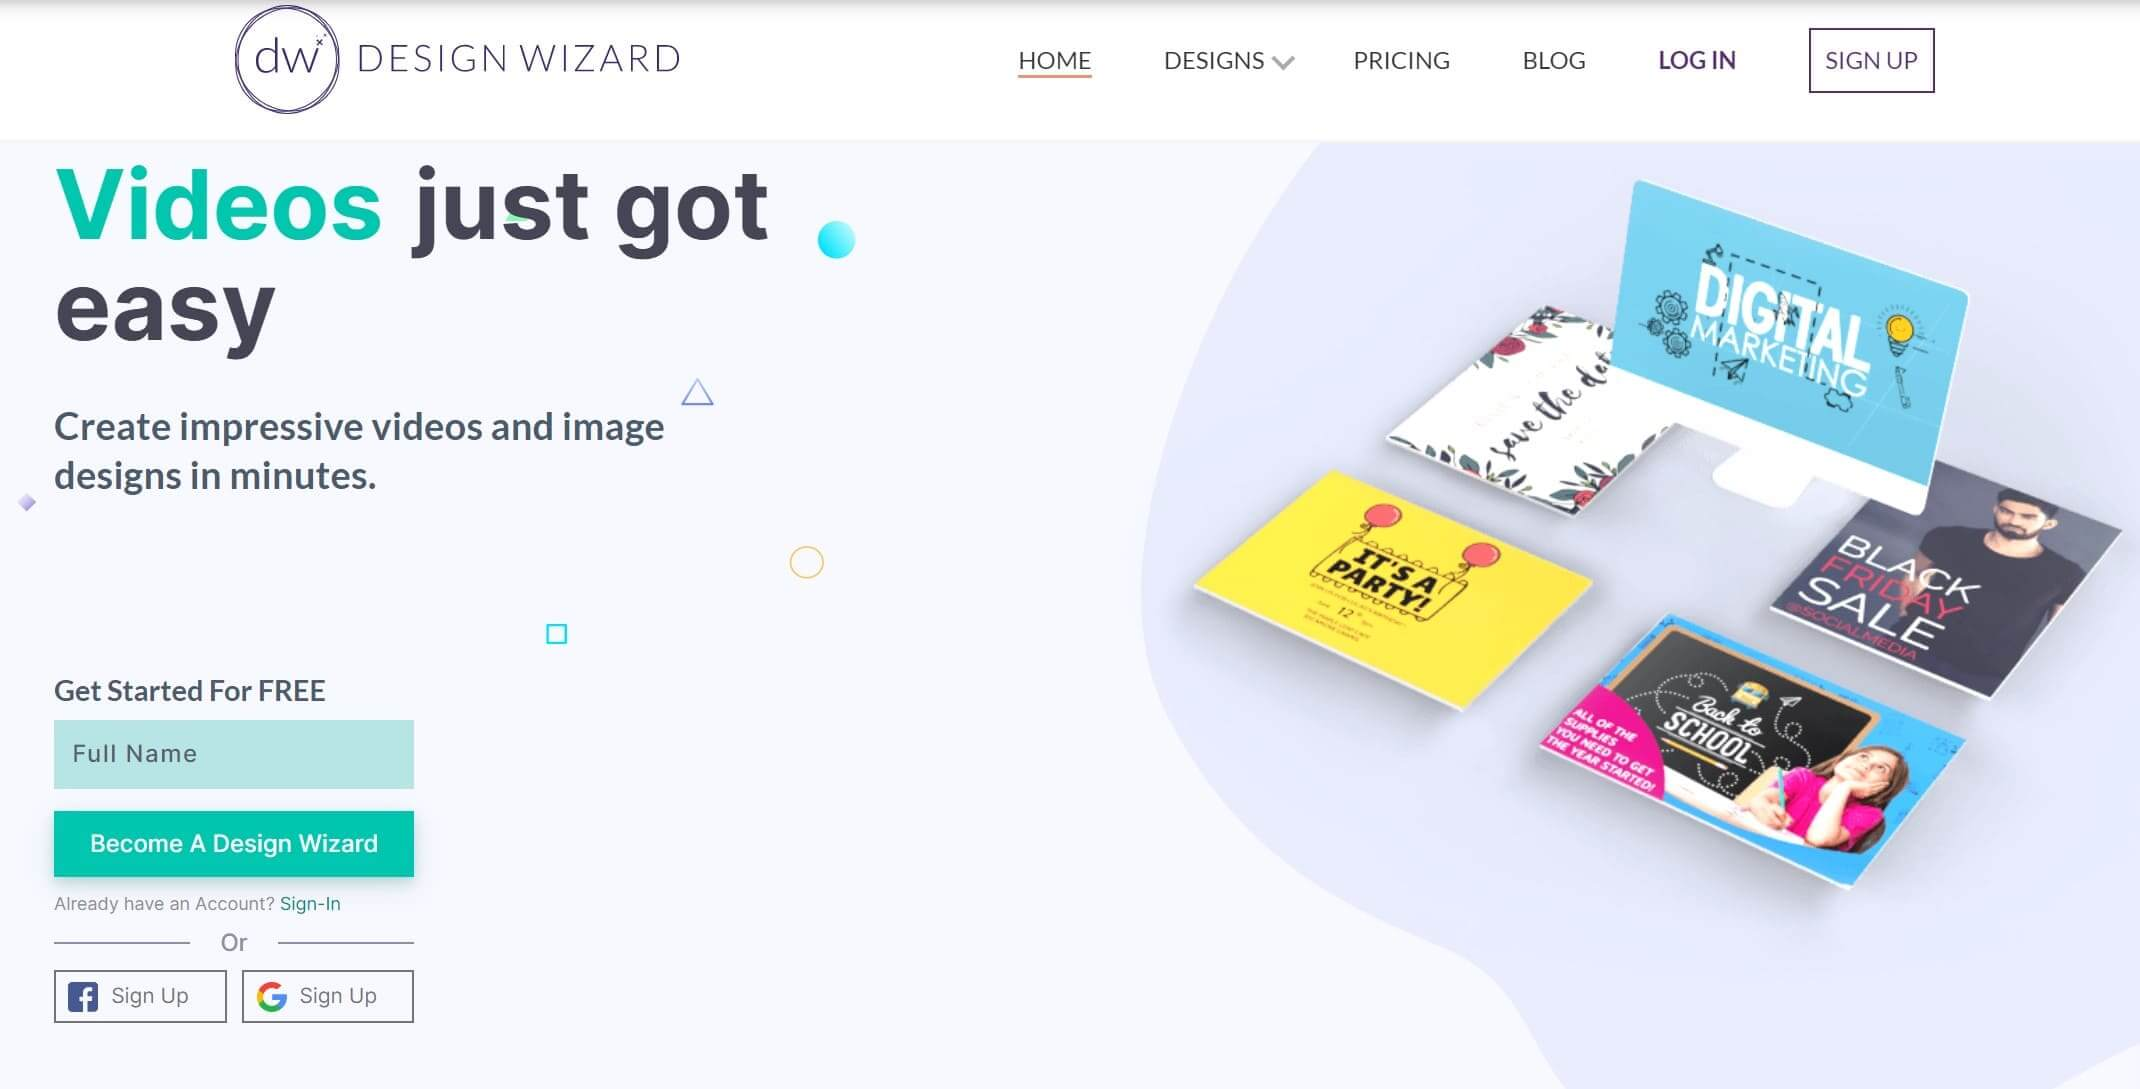 DesignWizard's website